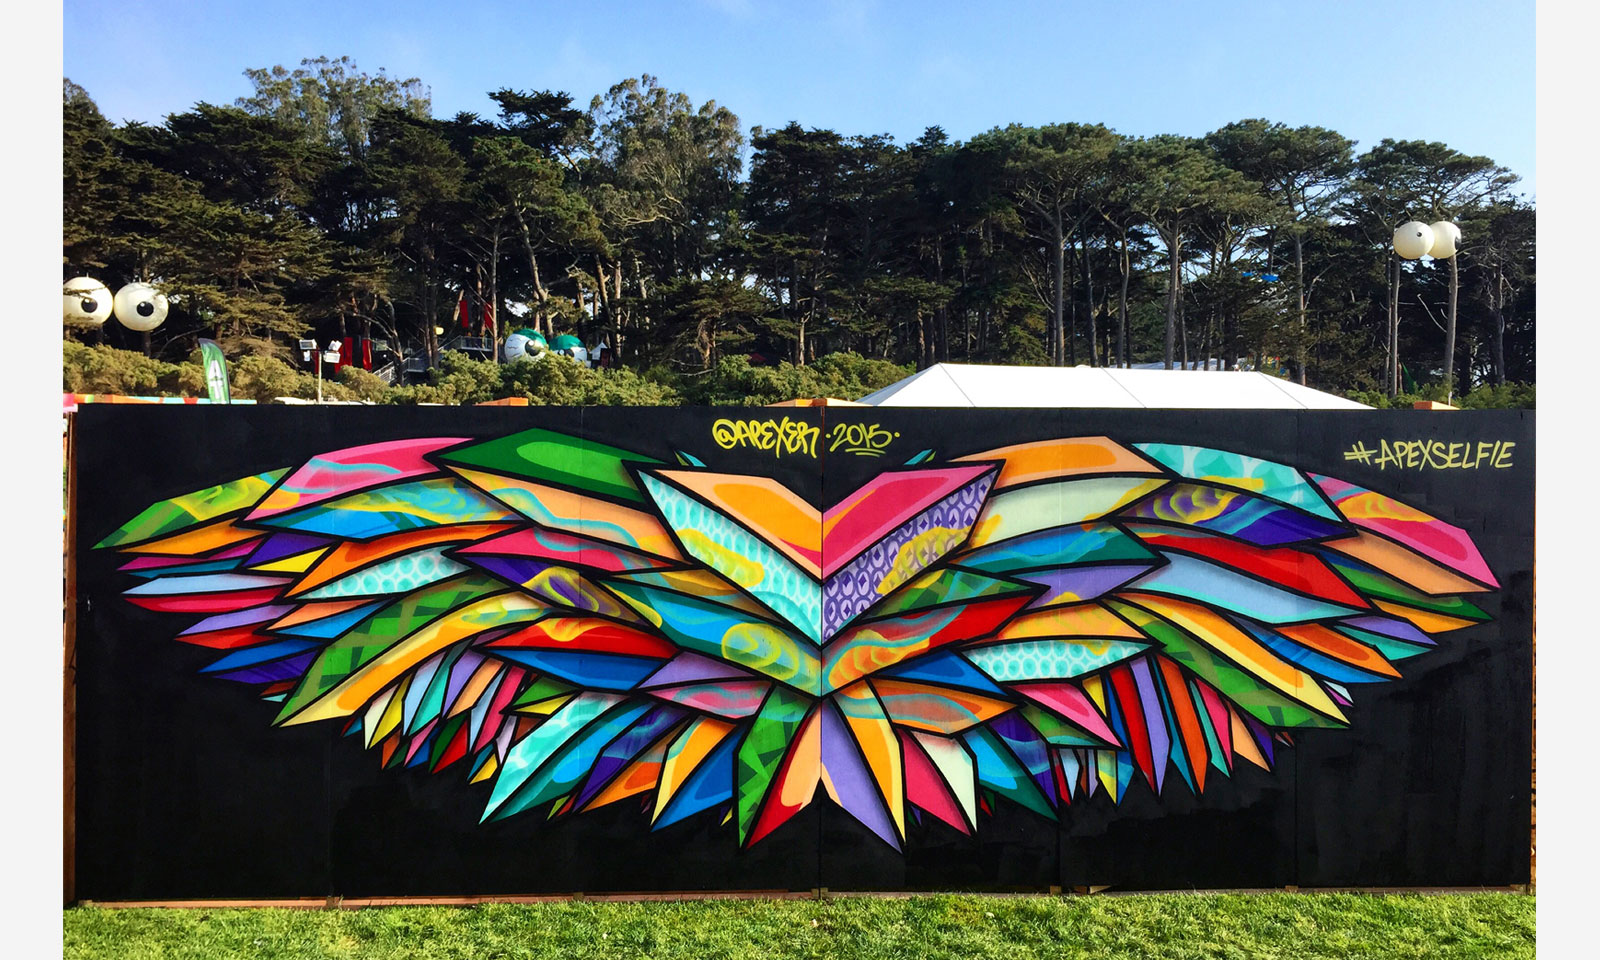 #ApexSelfie Mural at Outsidelands Music Festival in San Francisco, CA created by Apexer